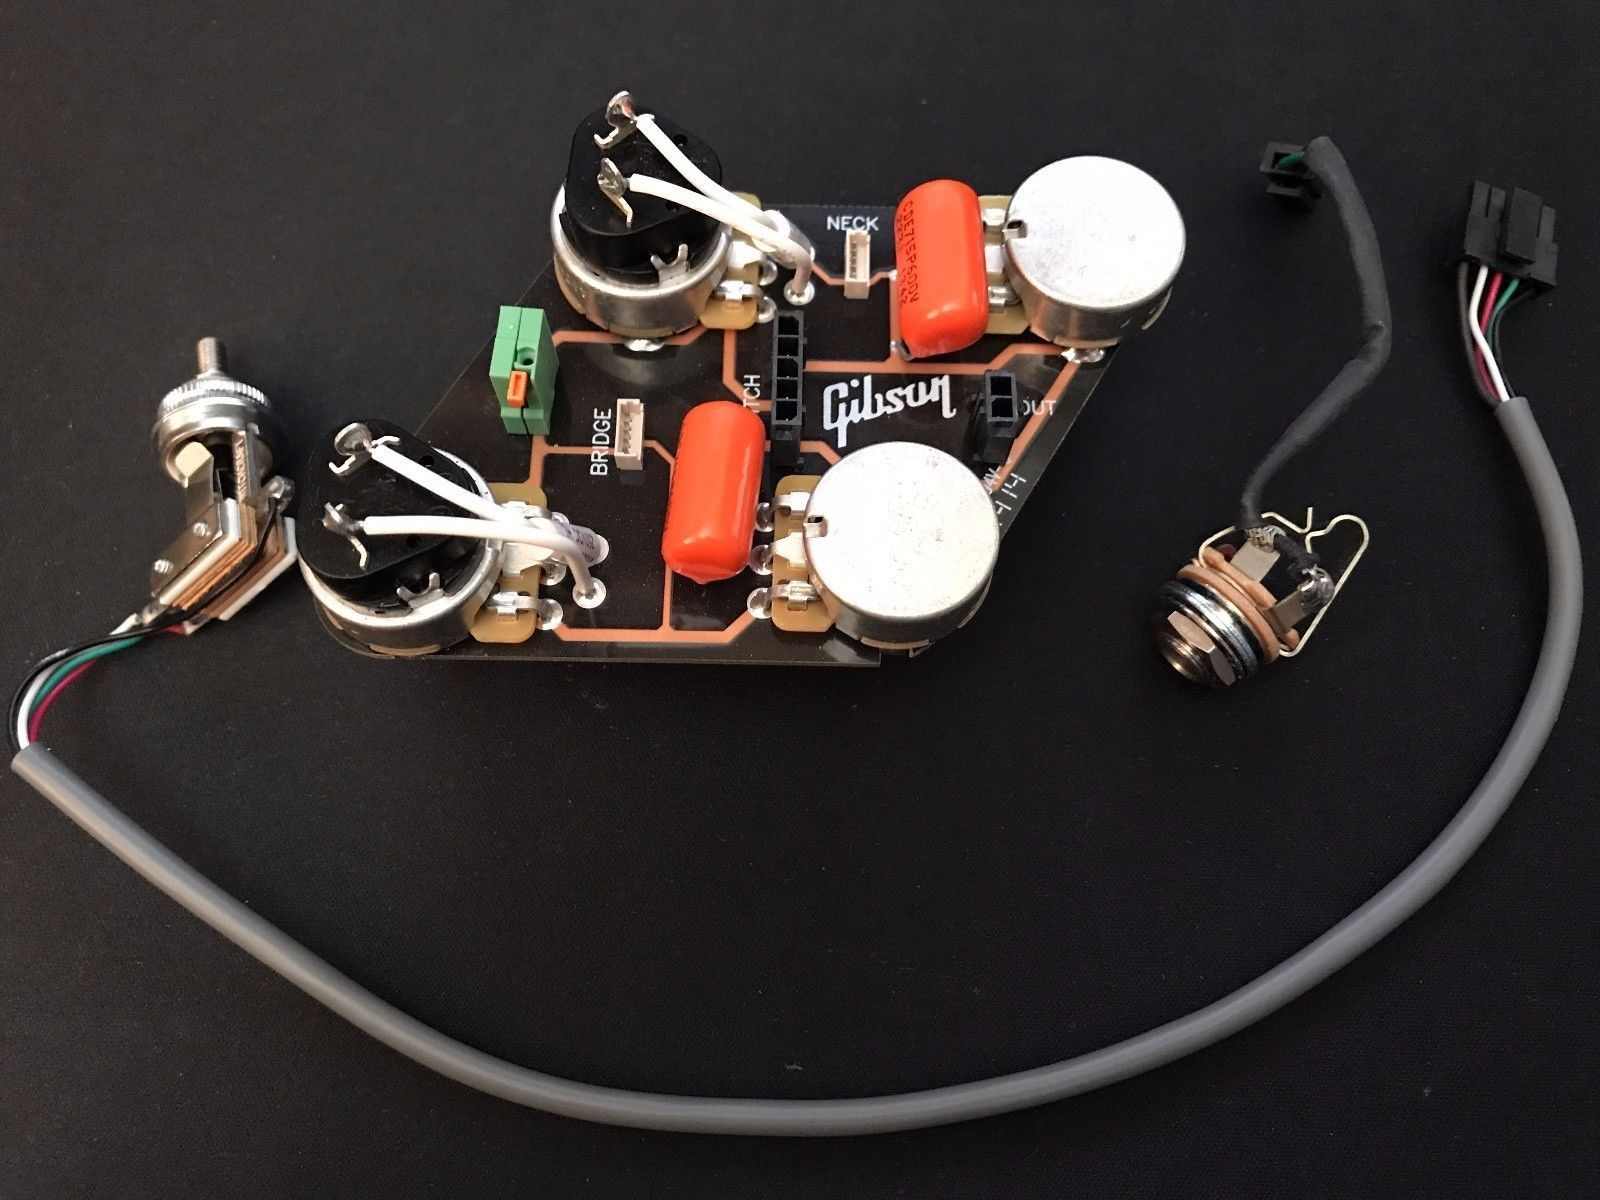 Gibson Les Paul Quick Connect Wiring Harness